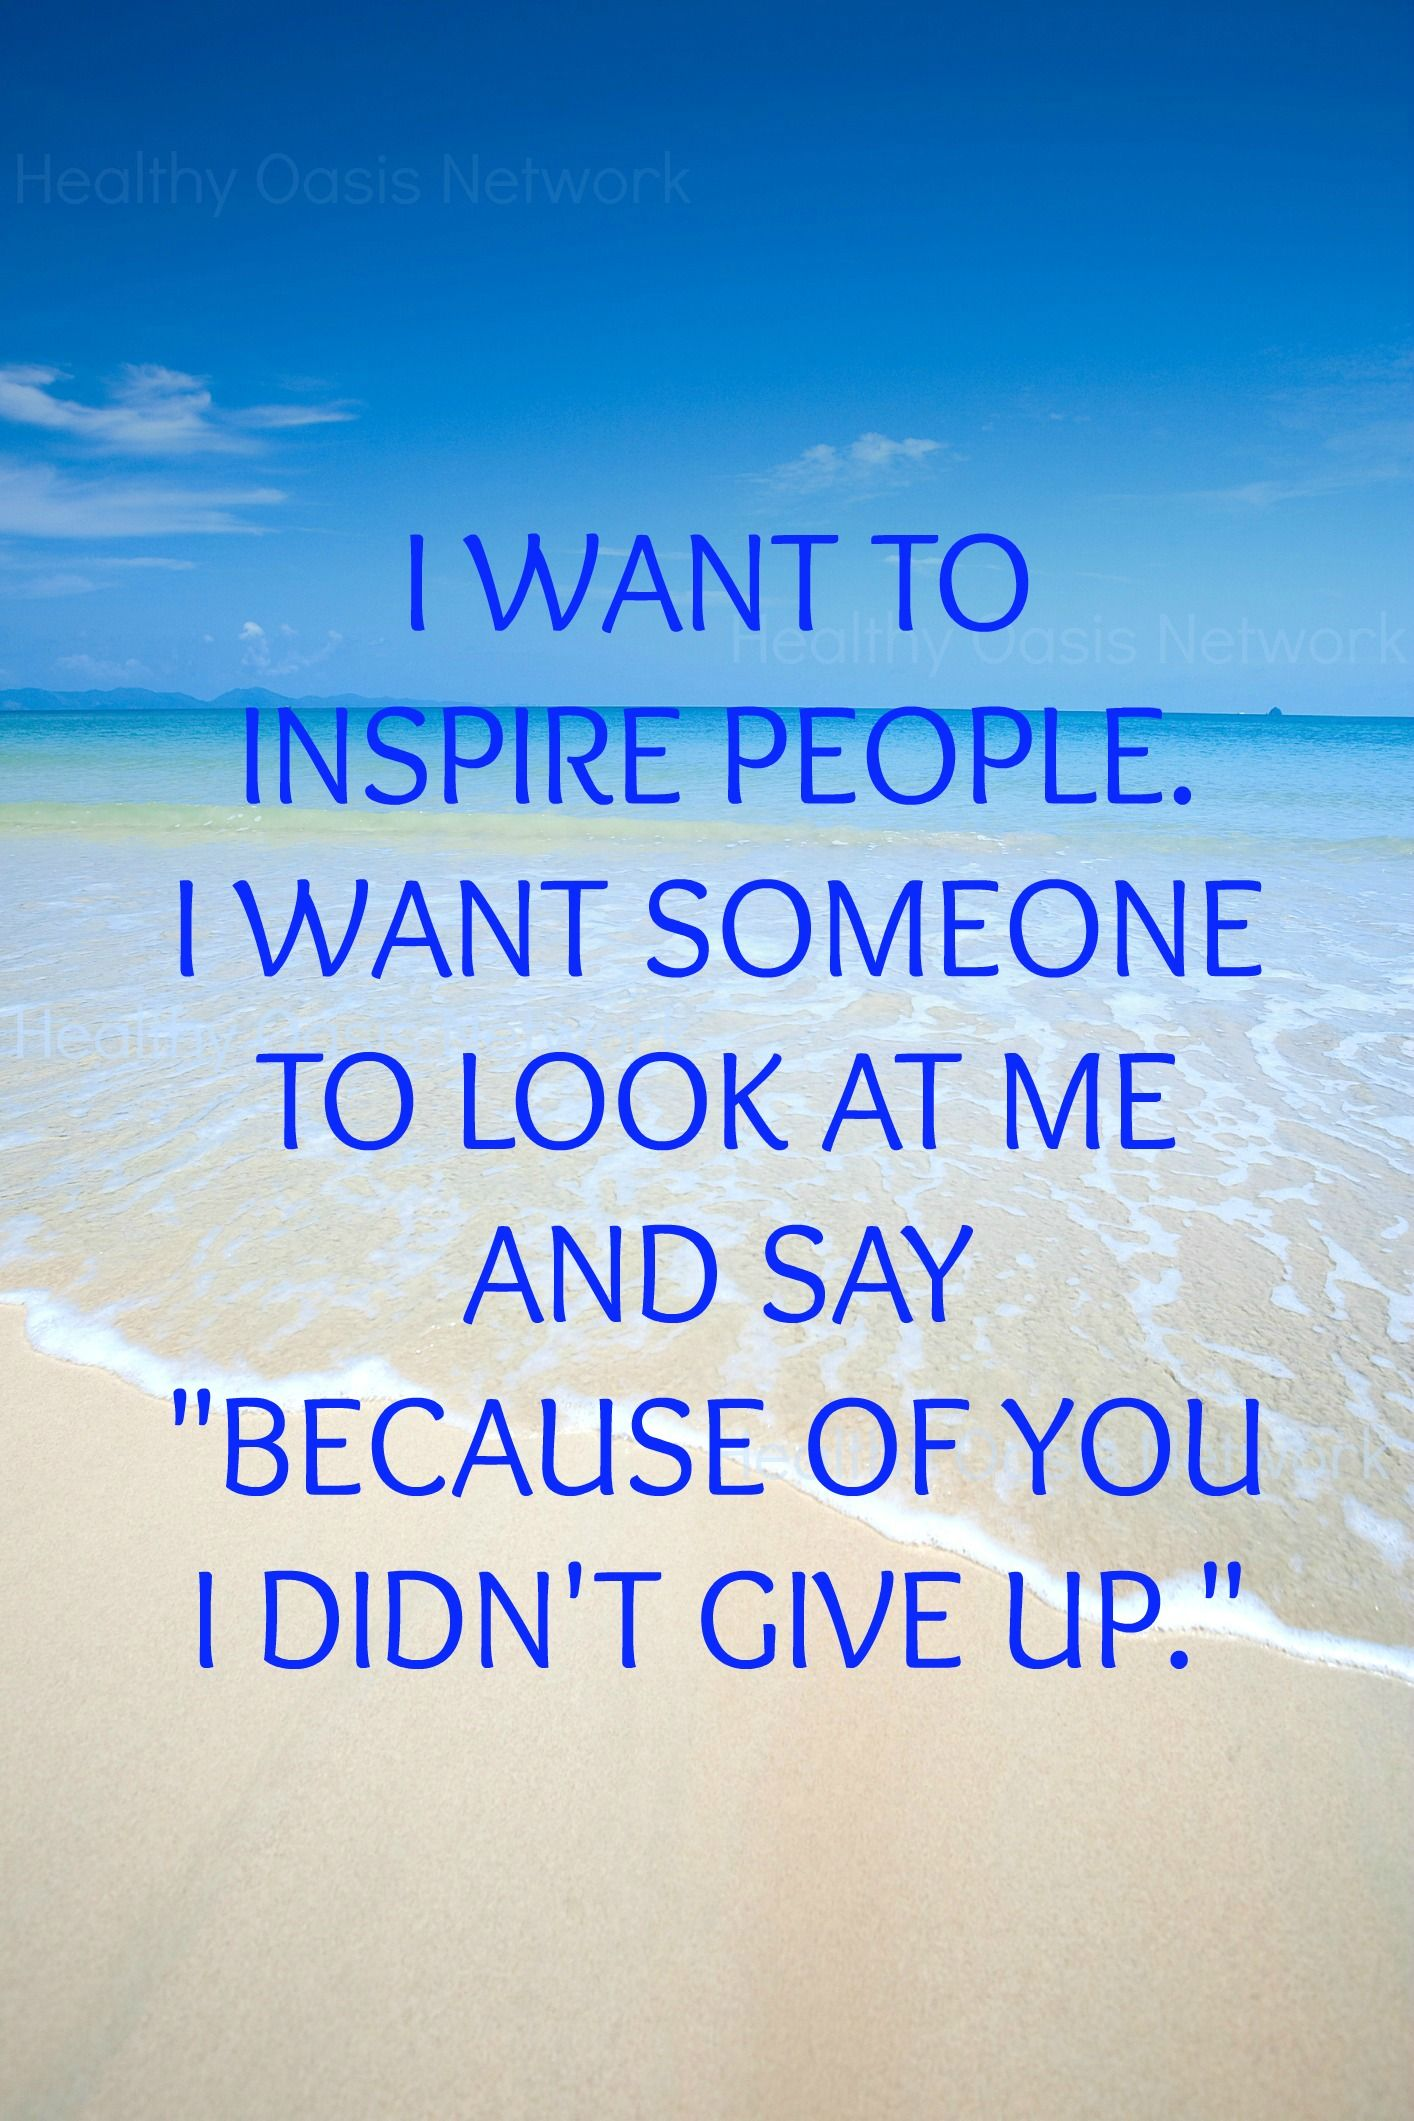 I want to inspire people. I want someone to look at me and